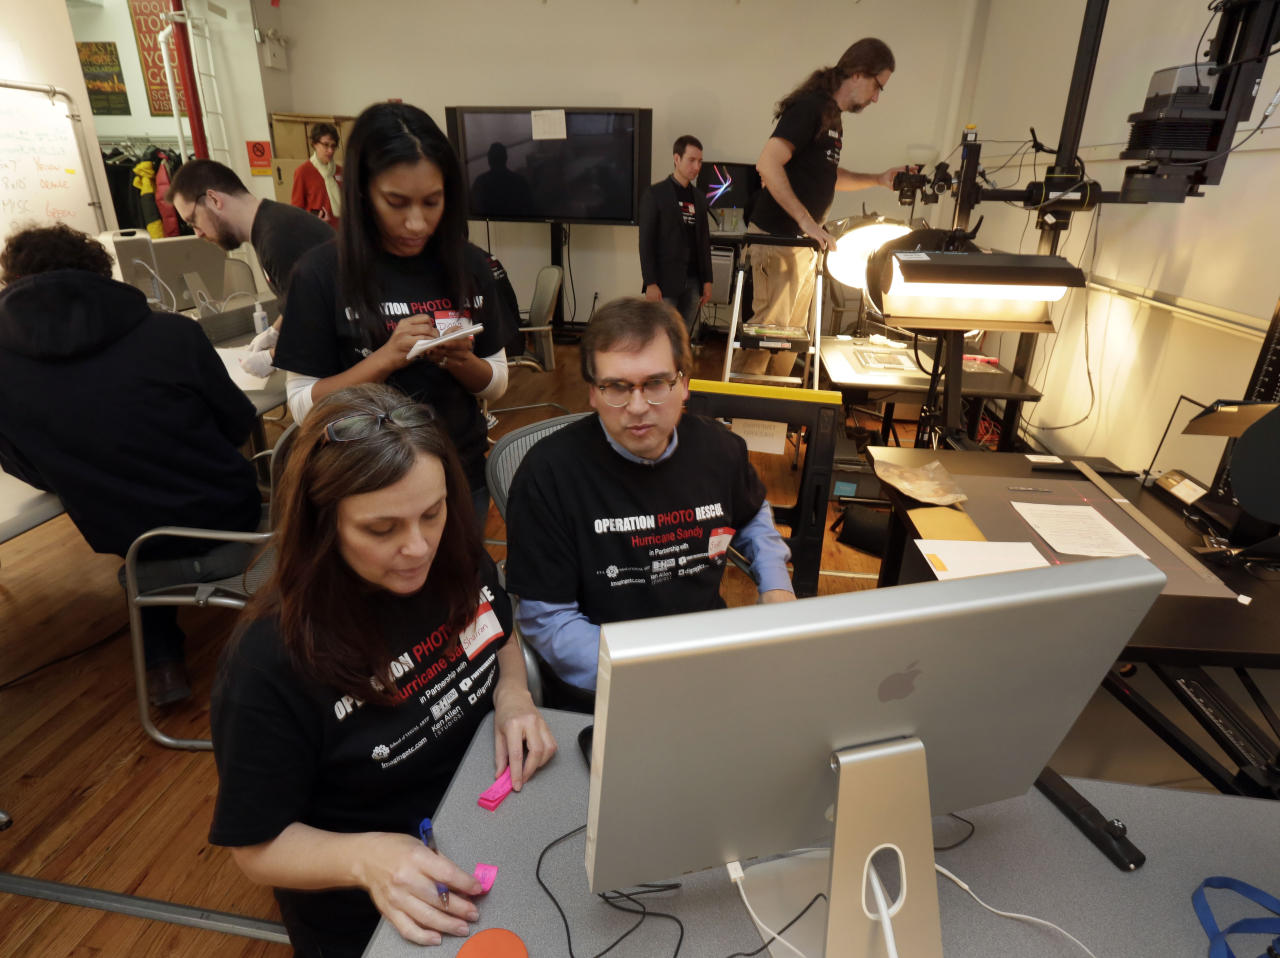 In this Saturday, Feb. 2, 2013 photo, Scott Geffert, seated center, senior imaging systems manager of New York's Metropolitan Museum of Art, assisted by Sharron Diedrichs, left, and Diana Mathura, catalog photos accepted for restoration by Operation Photo Rescue-Hurricane Sandy, at New York's School of Visual Arts. Of all the pictures of Superstorm Sandy's destruction, some of the most lingering are the warped, stained ones that sat on the walls and shelves of flooded homes. The Sandy project promises to be one of Operation Photo Rescue's most expert and ambitious efforts yet. (AP Photo/Richard Drew)